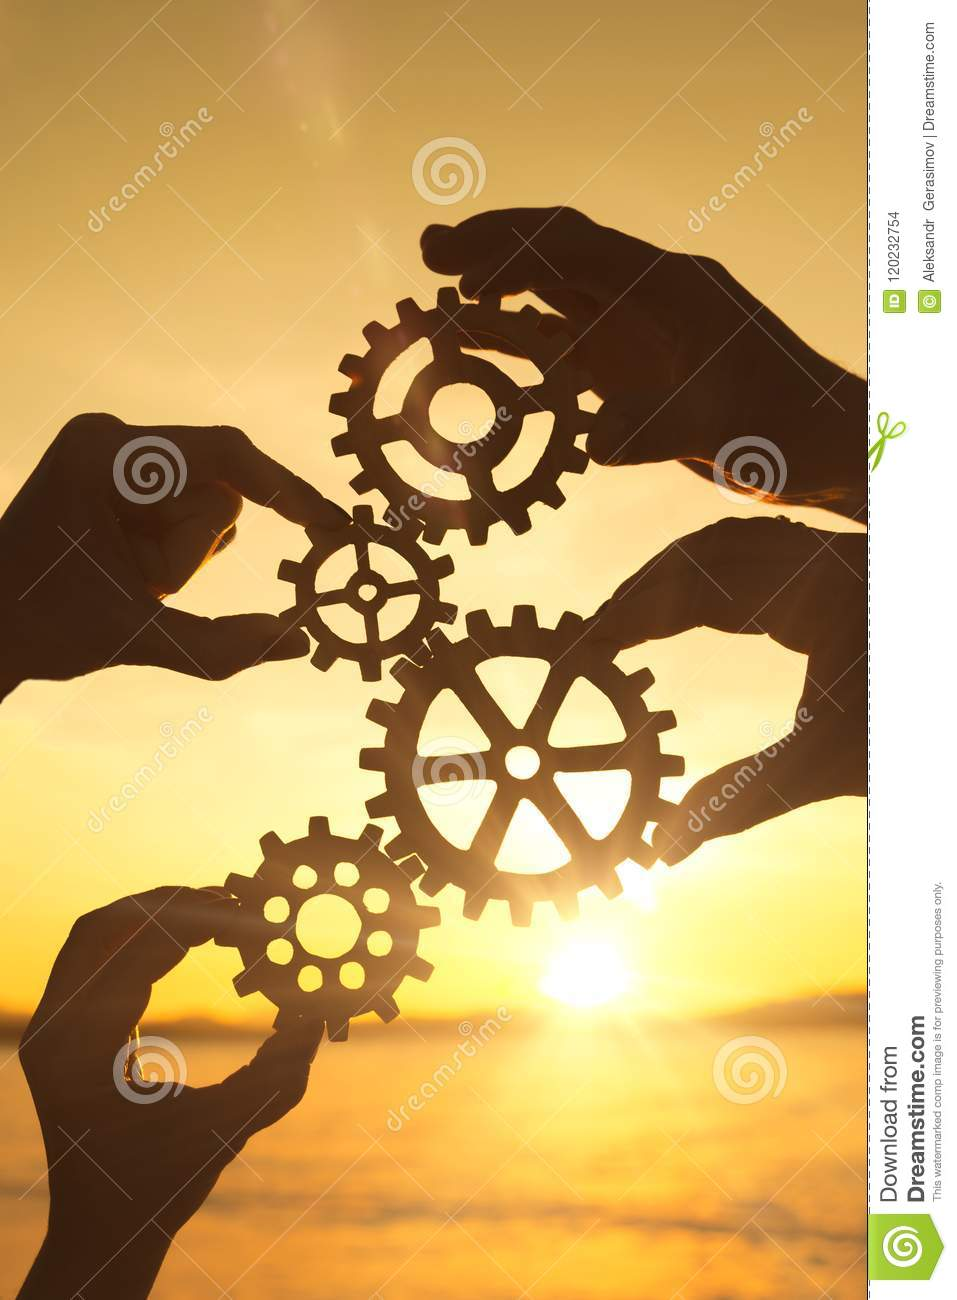 Four businessmen`s hands collect a puzzle of gears against the sunset.